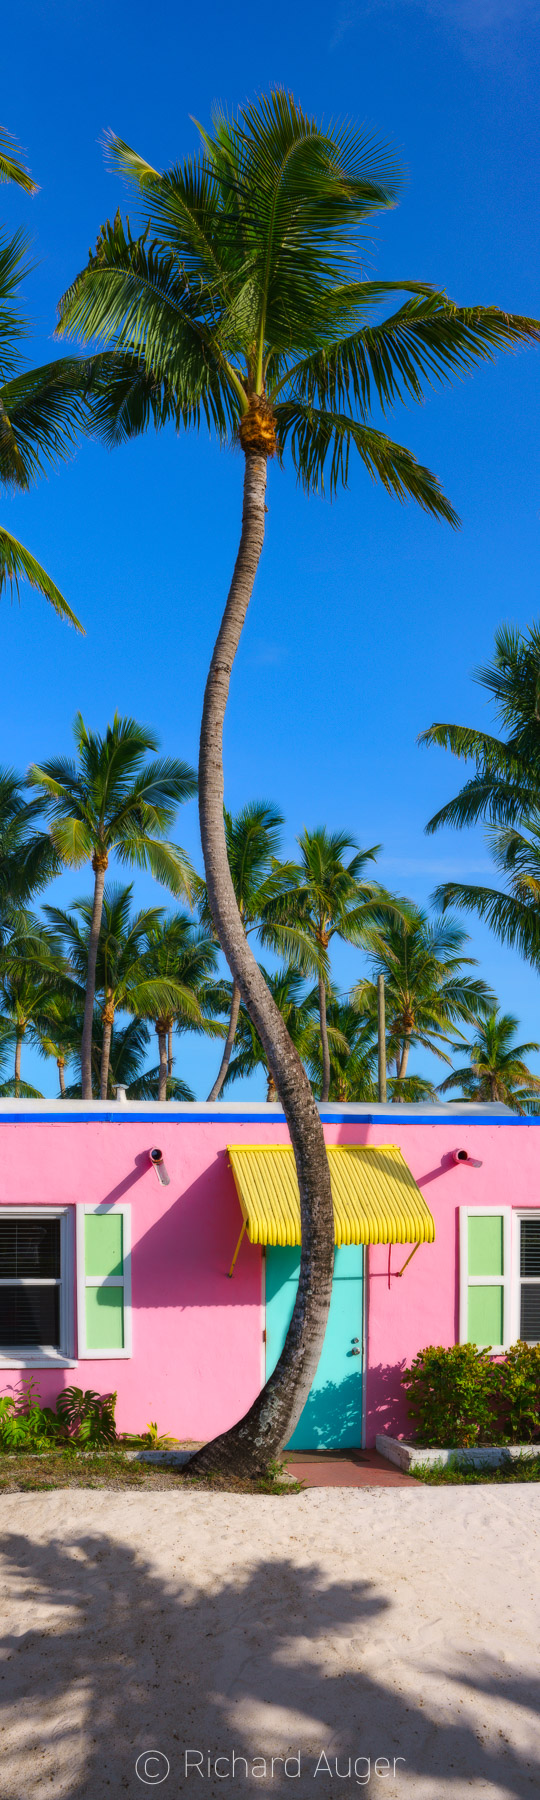 Islamorada, Florida Keys, Old Florida, Hotel, Pink. Blues, Sand, Palm Trees, Sky, Vertical Panorama, Photograph, Photographer